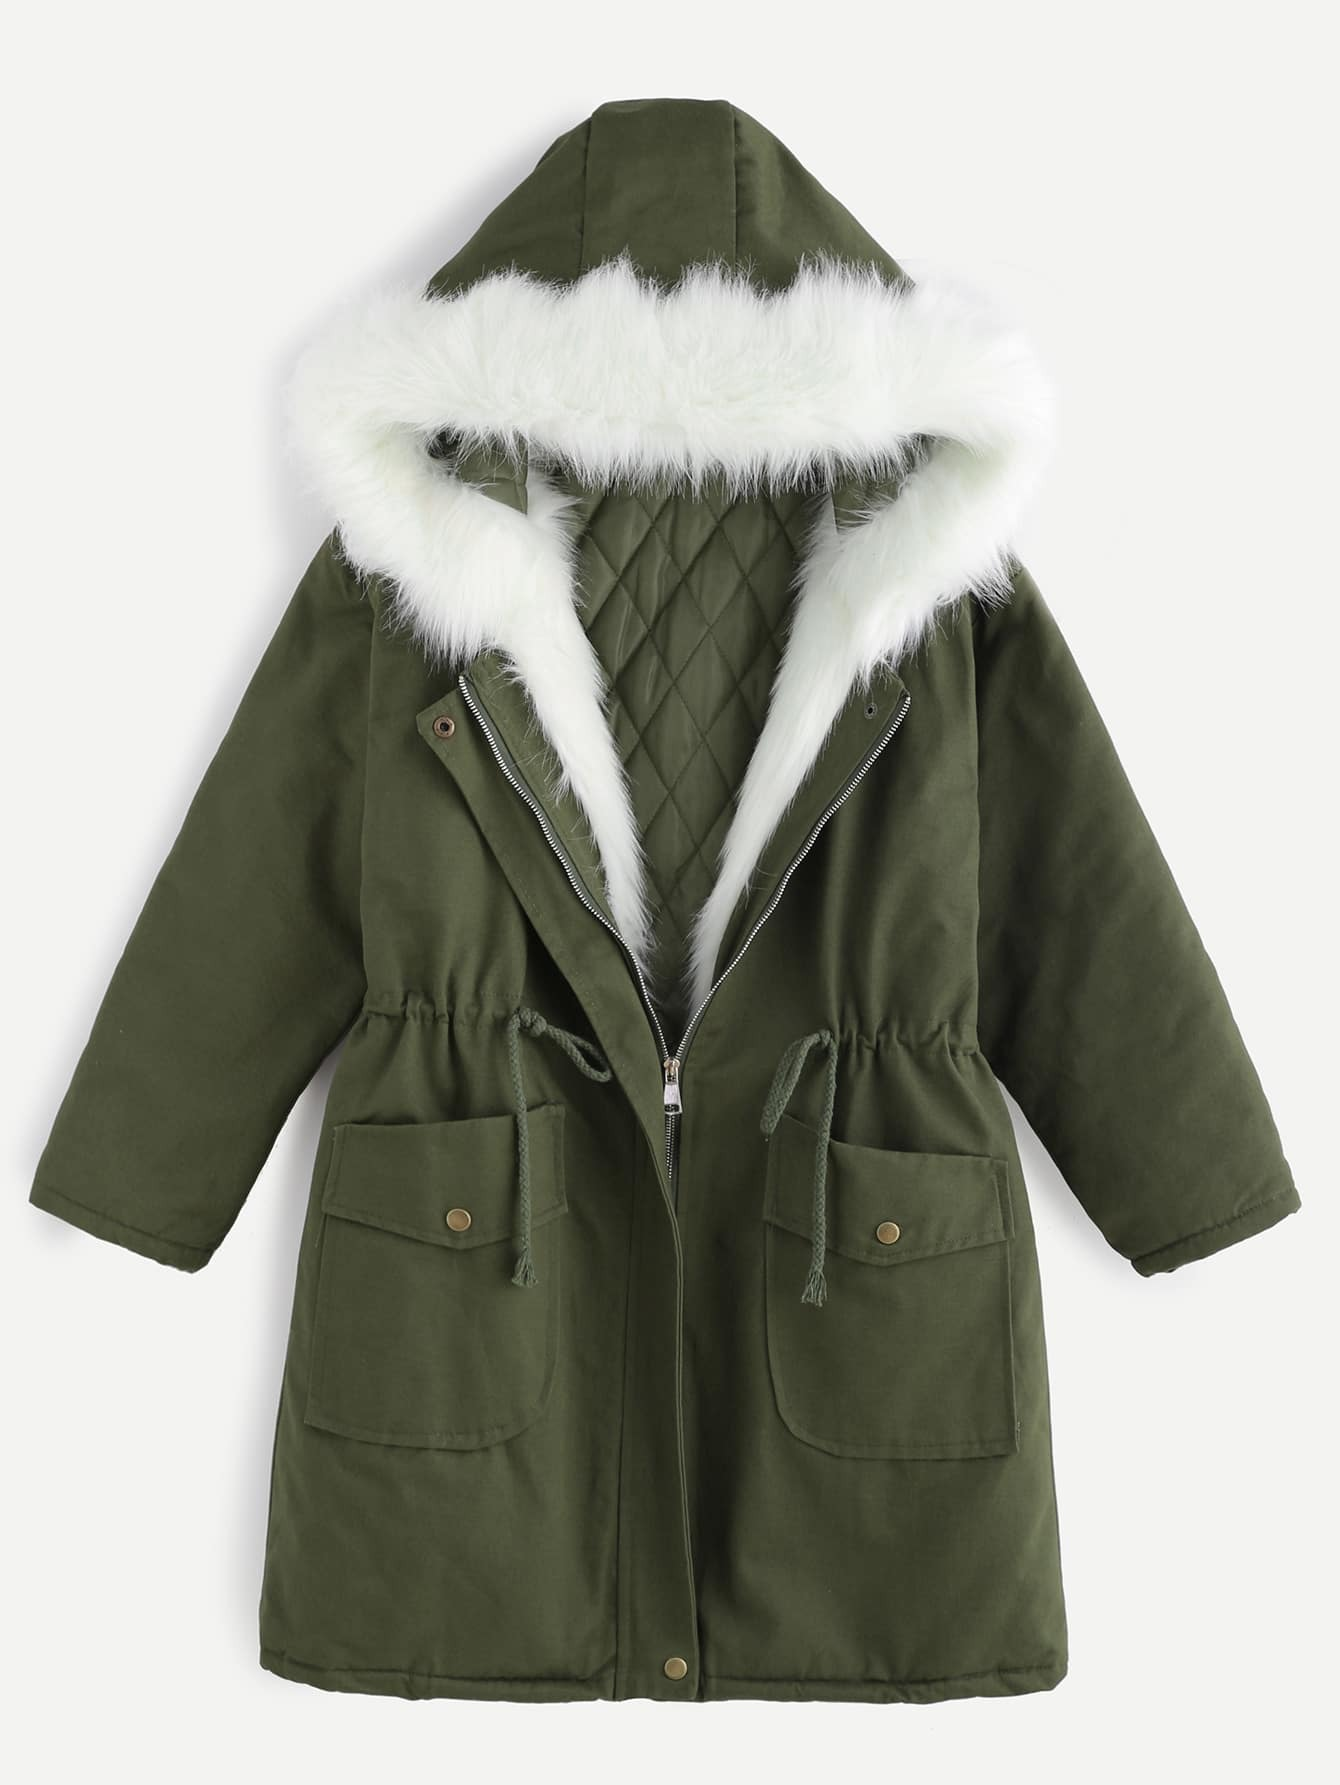 Buy Army Green Drawstring Hooded Parka Faux Fur